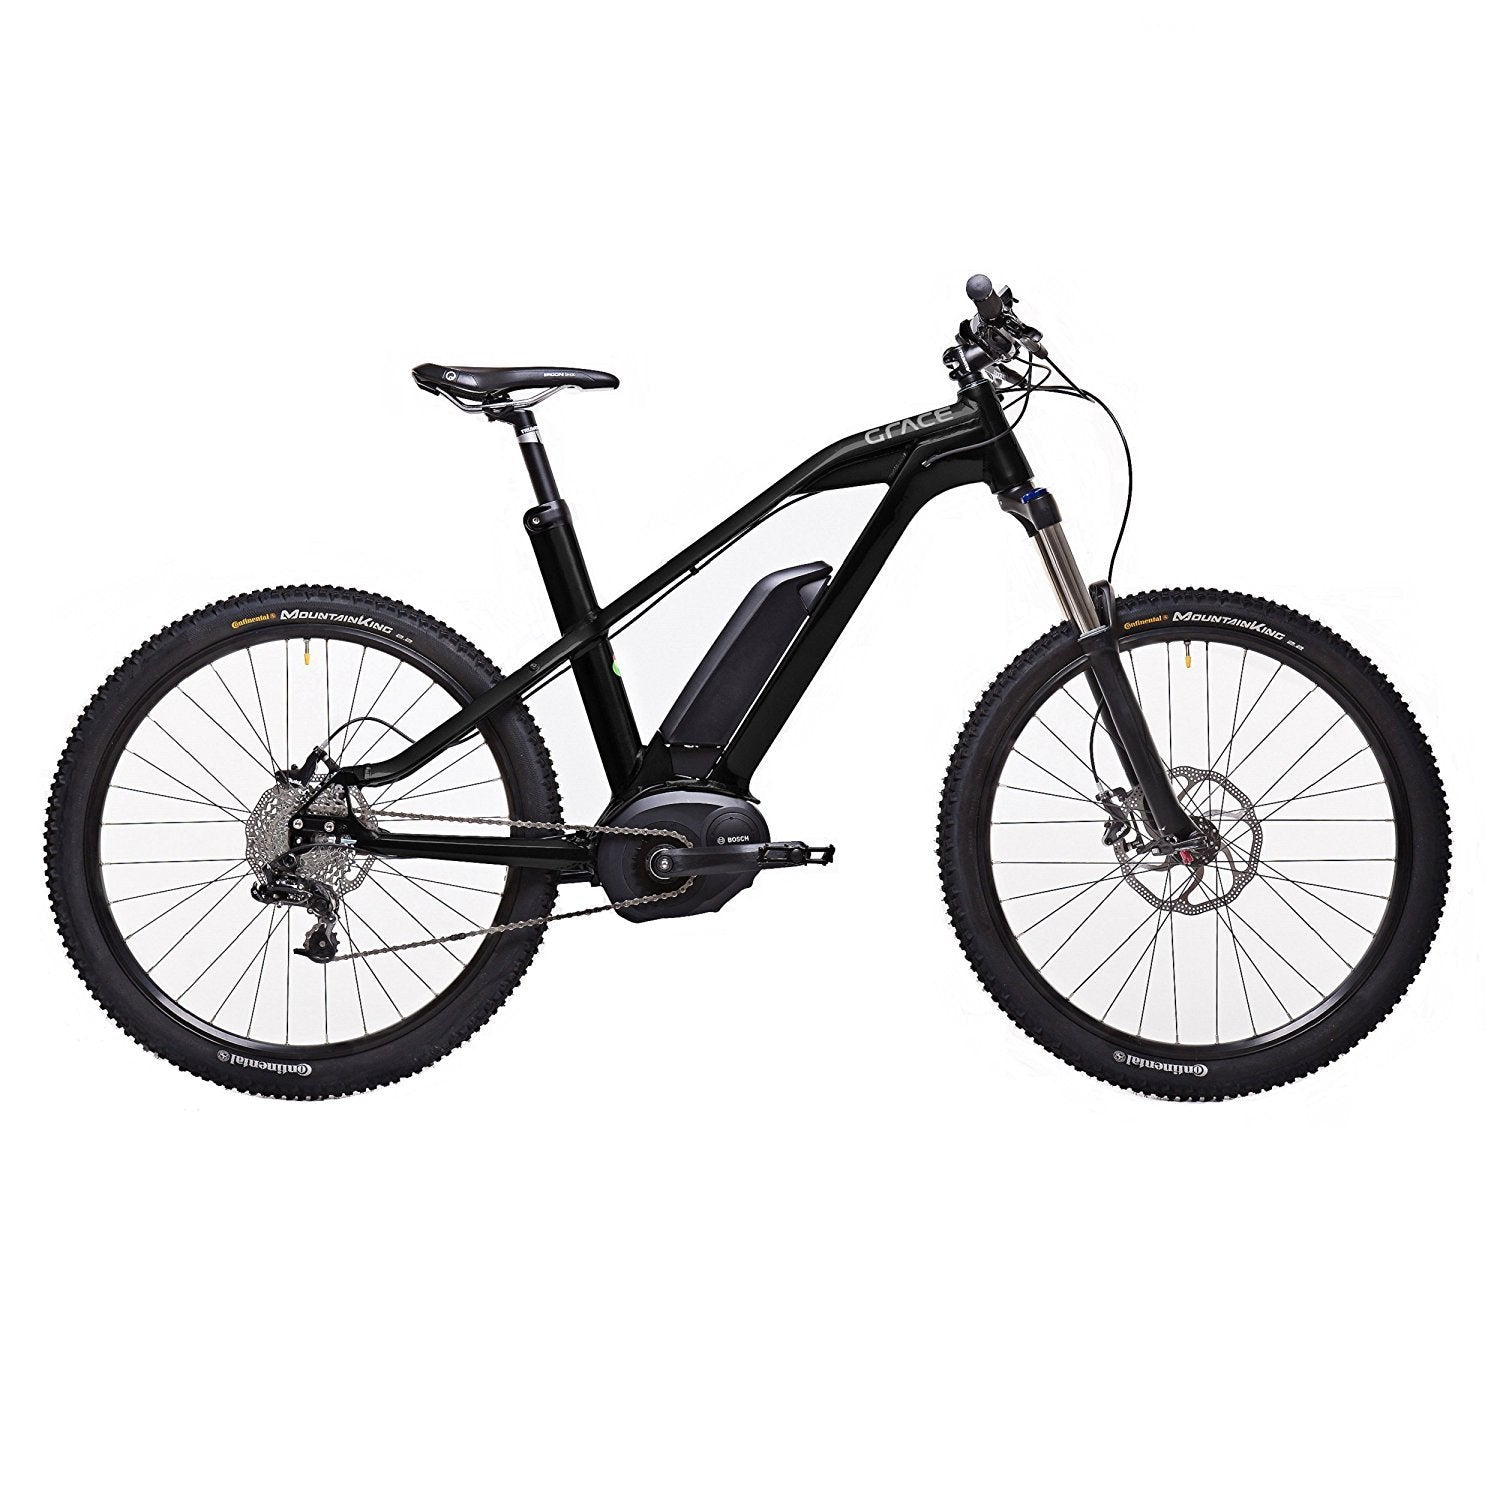 grace mx ii trail 350w bosch electric mountain bike. Black Bedroom Furniture Sets. Home Design Ideas